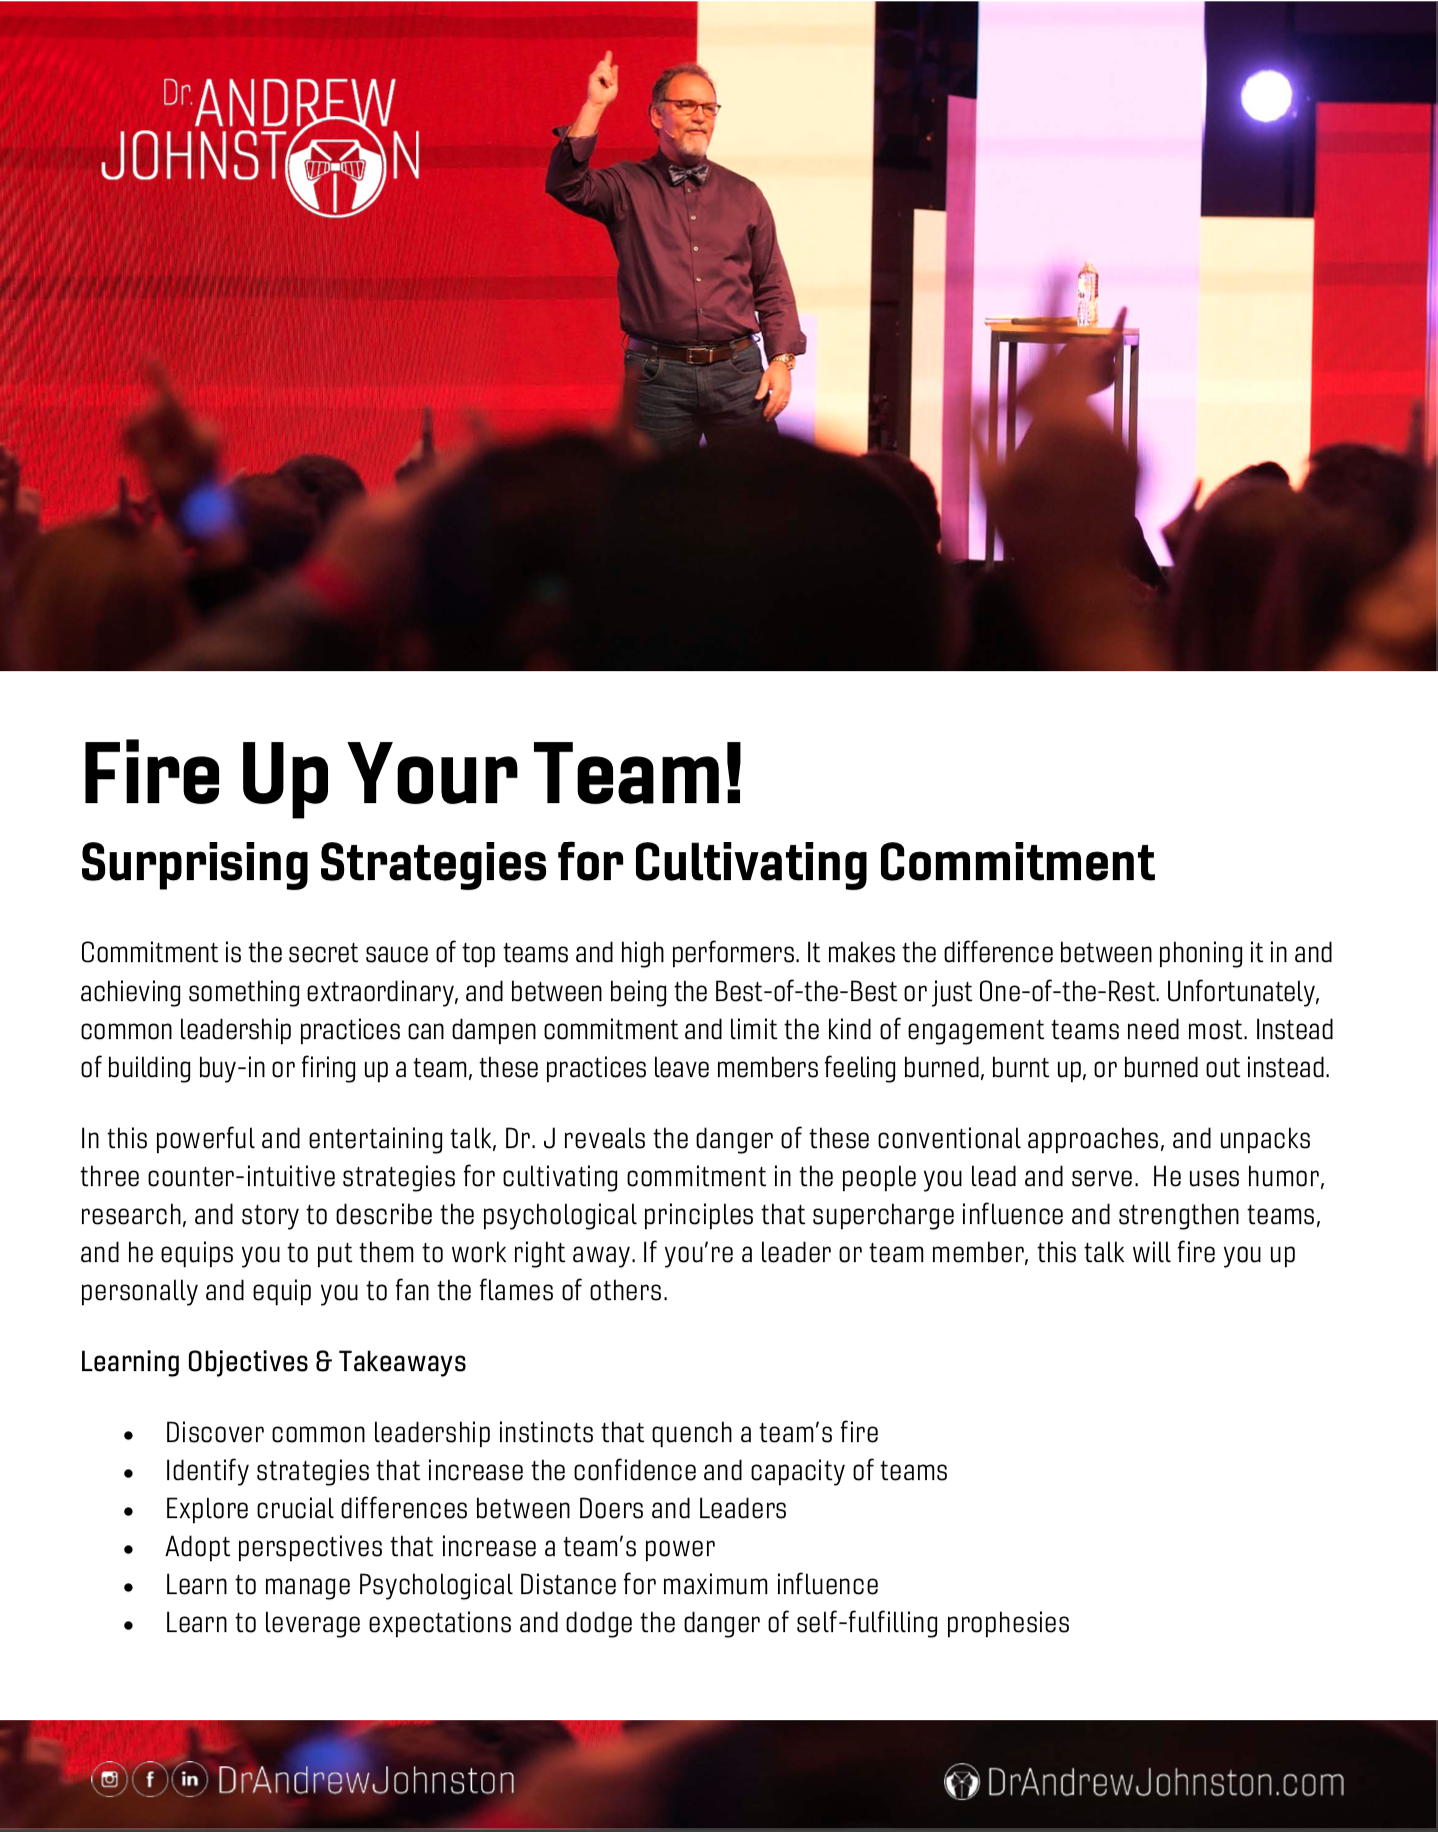 Fire Up Your Team Keynote